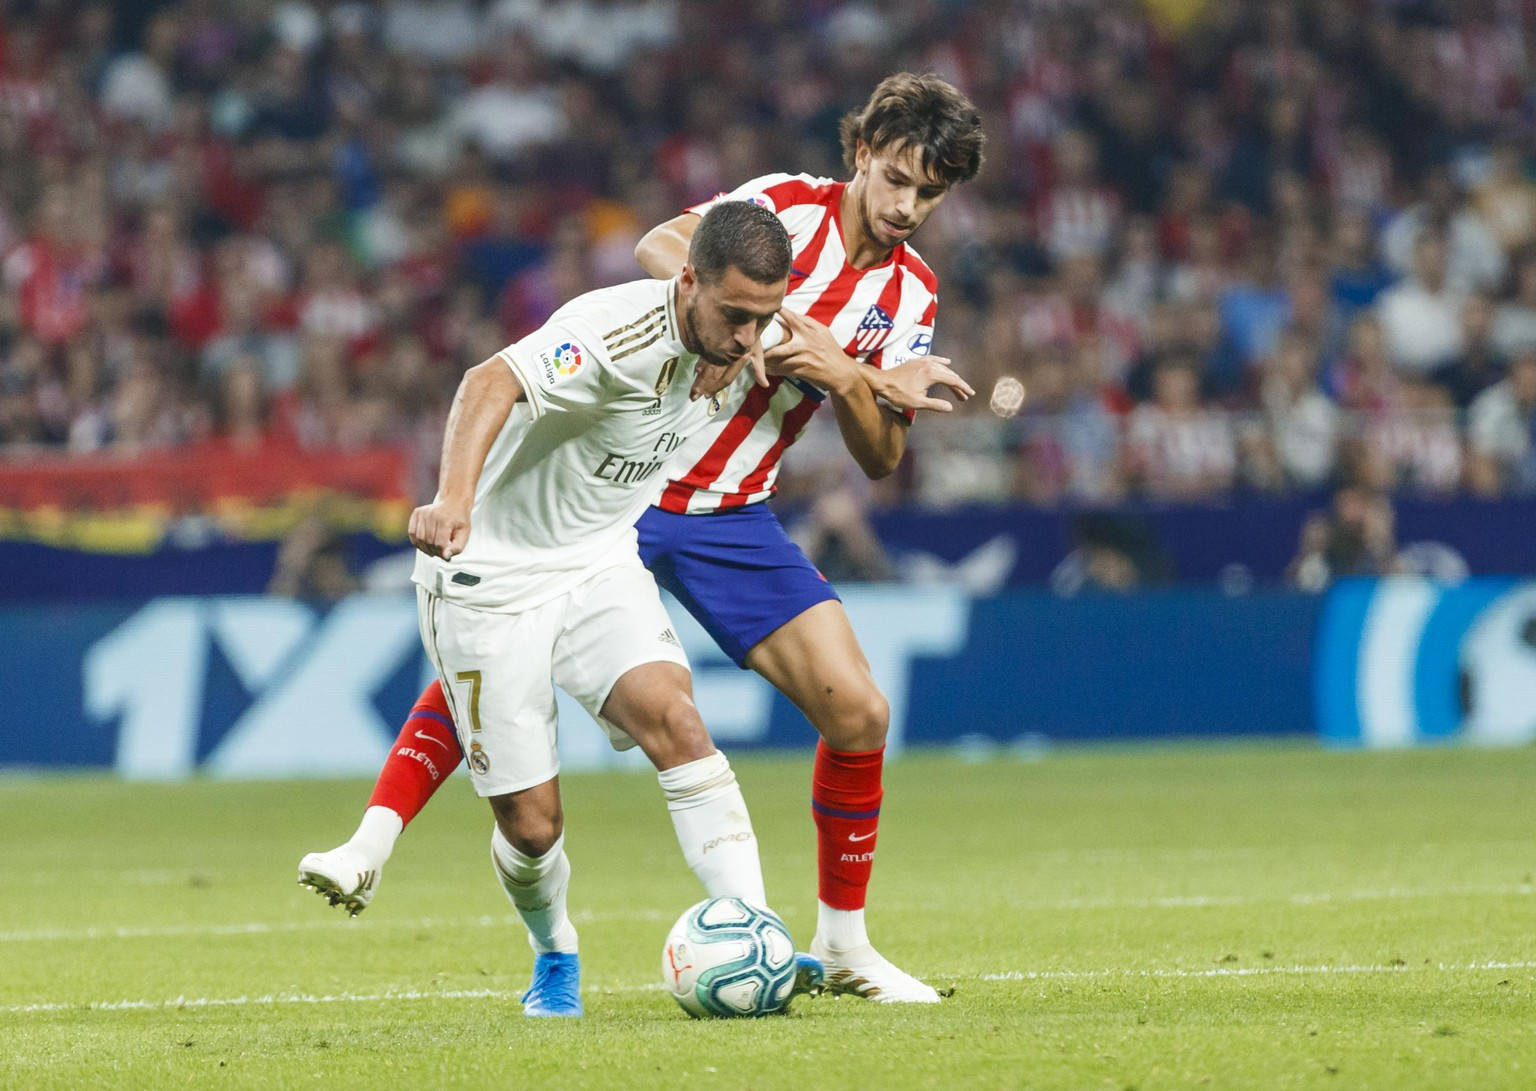 Partido de LaLiga Santander disputado entre Atletico y Real Madrid. En la imagen, Joao Felix lucha con Hazard. LaLiga Santander match played between Atletico and Real Madrid. In this picture, Joao Felix battles with Hazard. PUBLICATIONxINxGERxSUIxAUTxHUNxONLY